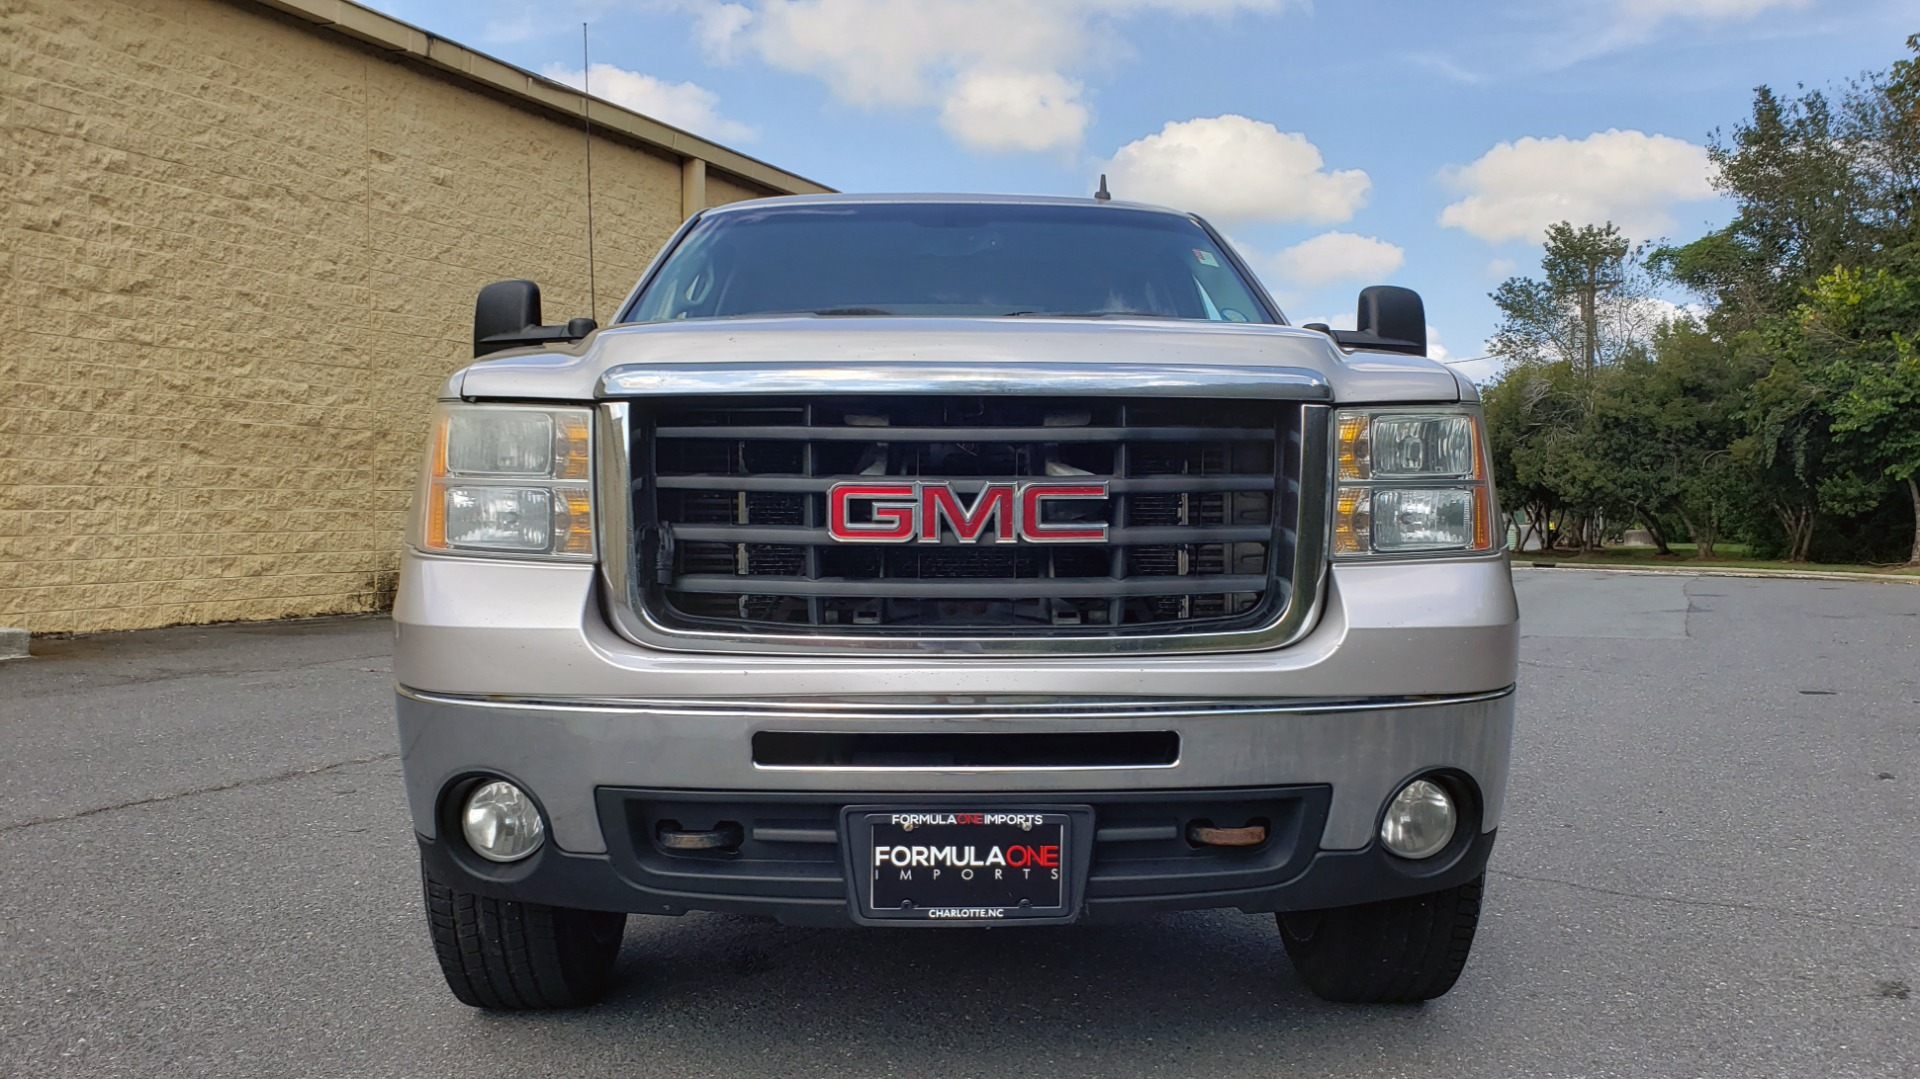 Used 2008 GMC SIERRA 3500HD SRW SLT CREWCAB / 167IN WB / DURAMAX / 6-SPD AUTO / BOSE for sale Sold at Formula Imports in Charlotte NC 28227 26